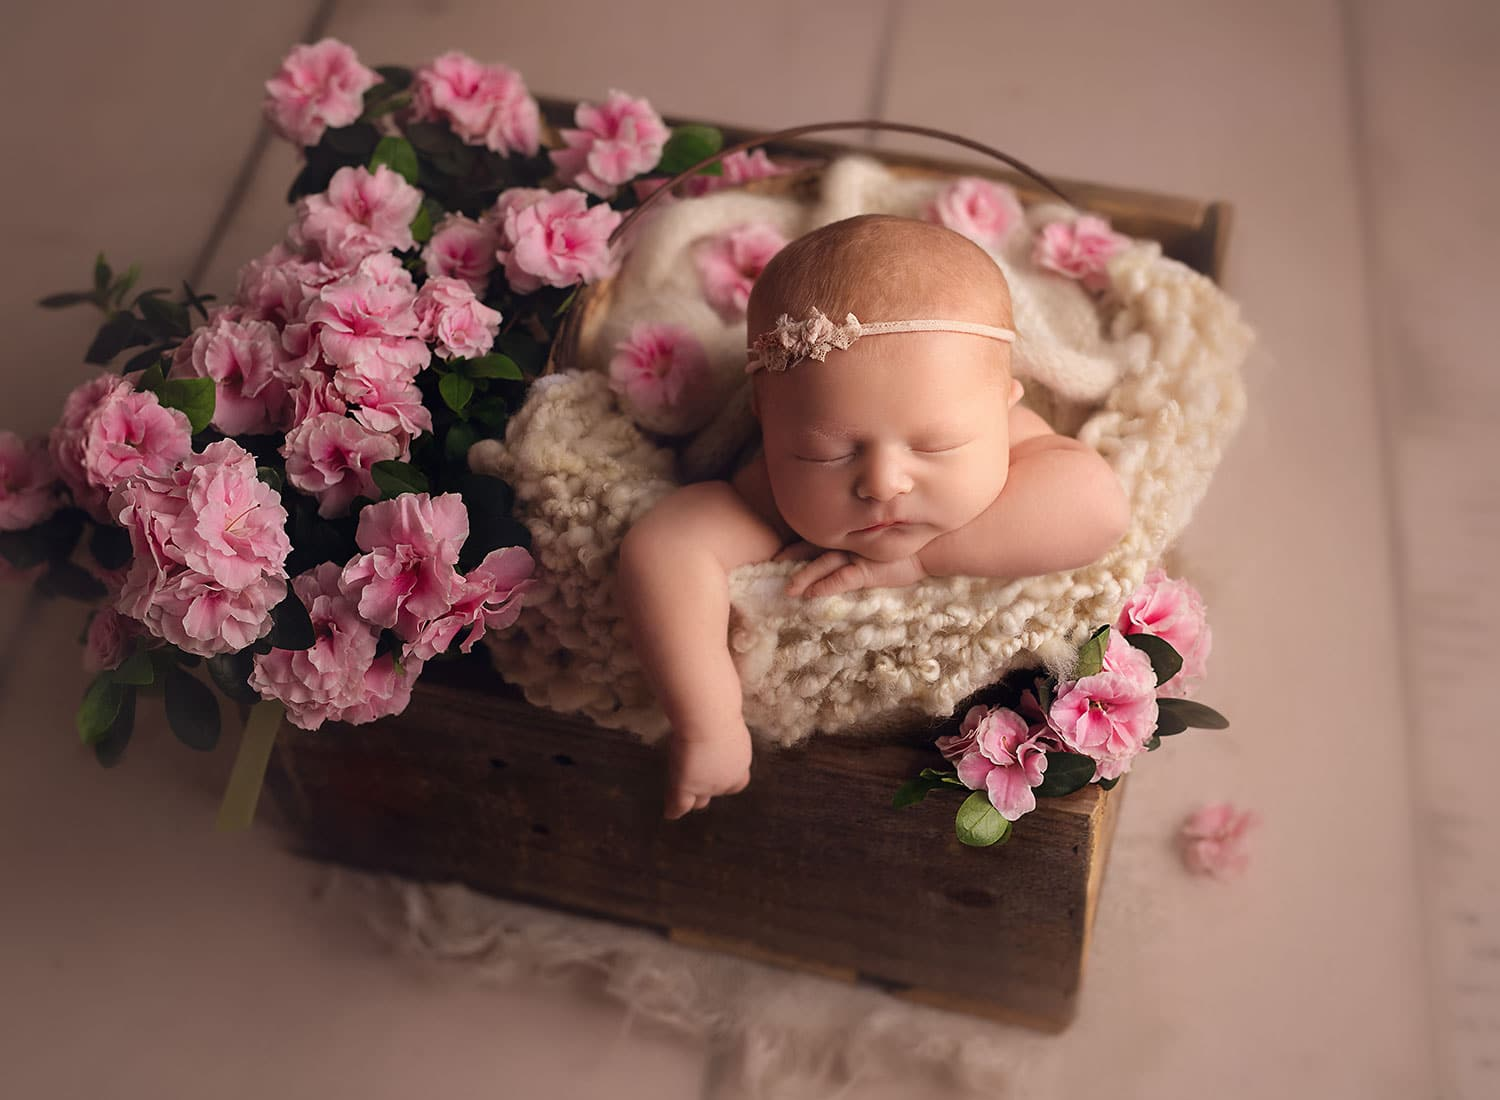 Perfect bucket pose with newborn girl and pink flowers